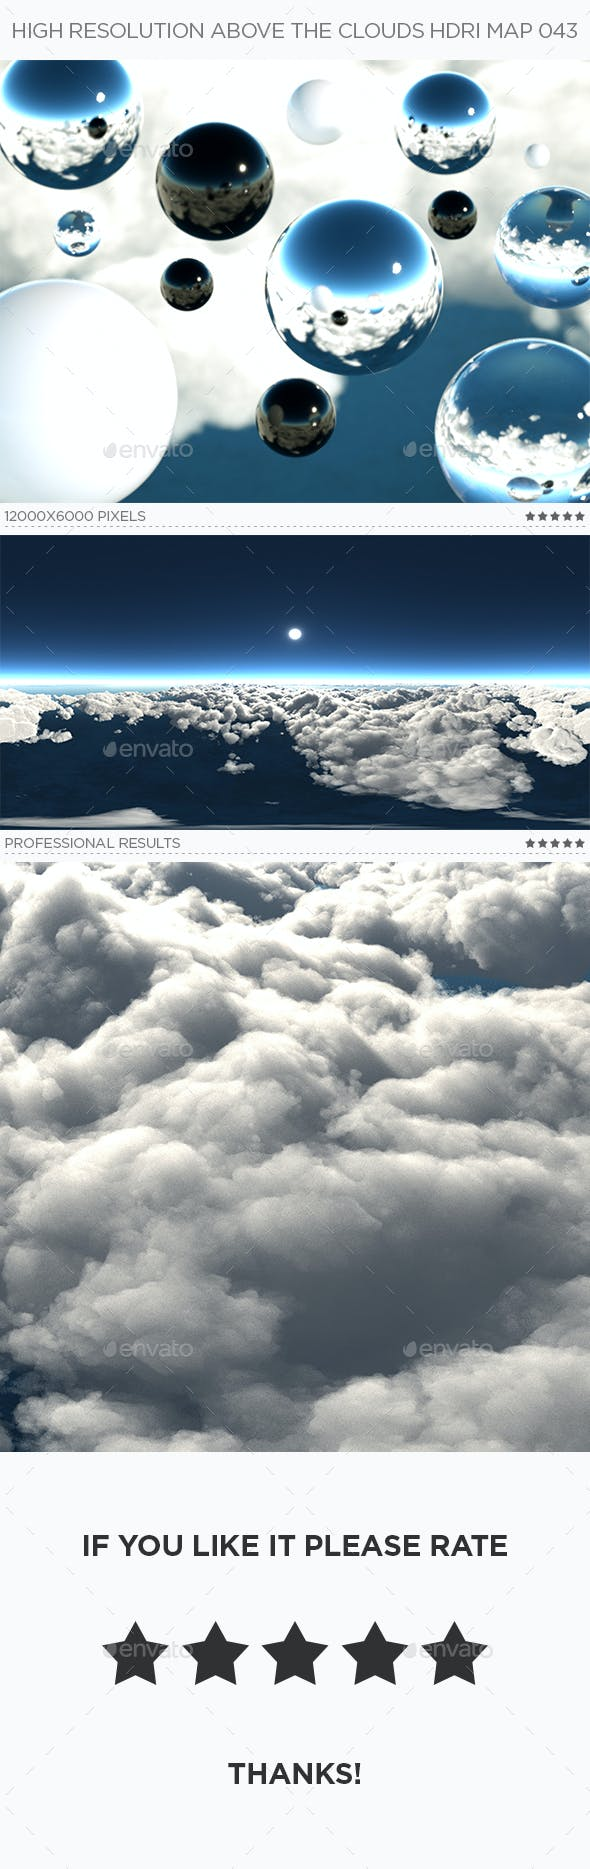 High Resolution Above The Clouds HDRi Map 043 - 3DOcean Item for Sale